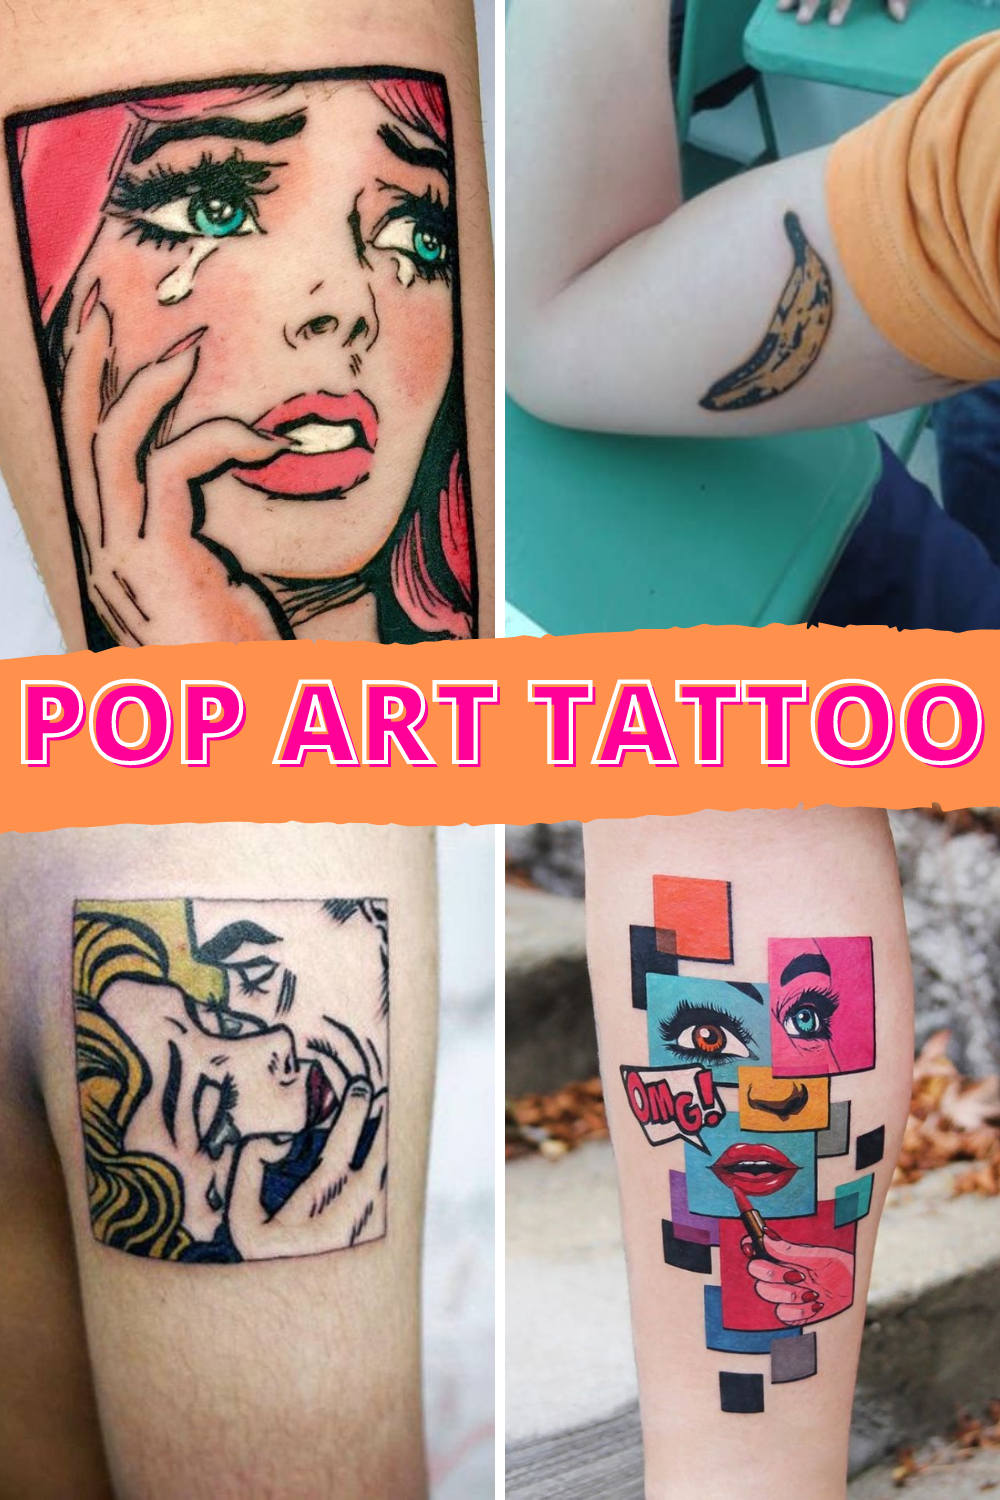 Pop Art Tattoo Inspiration & Designs